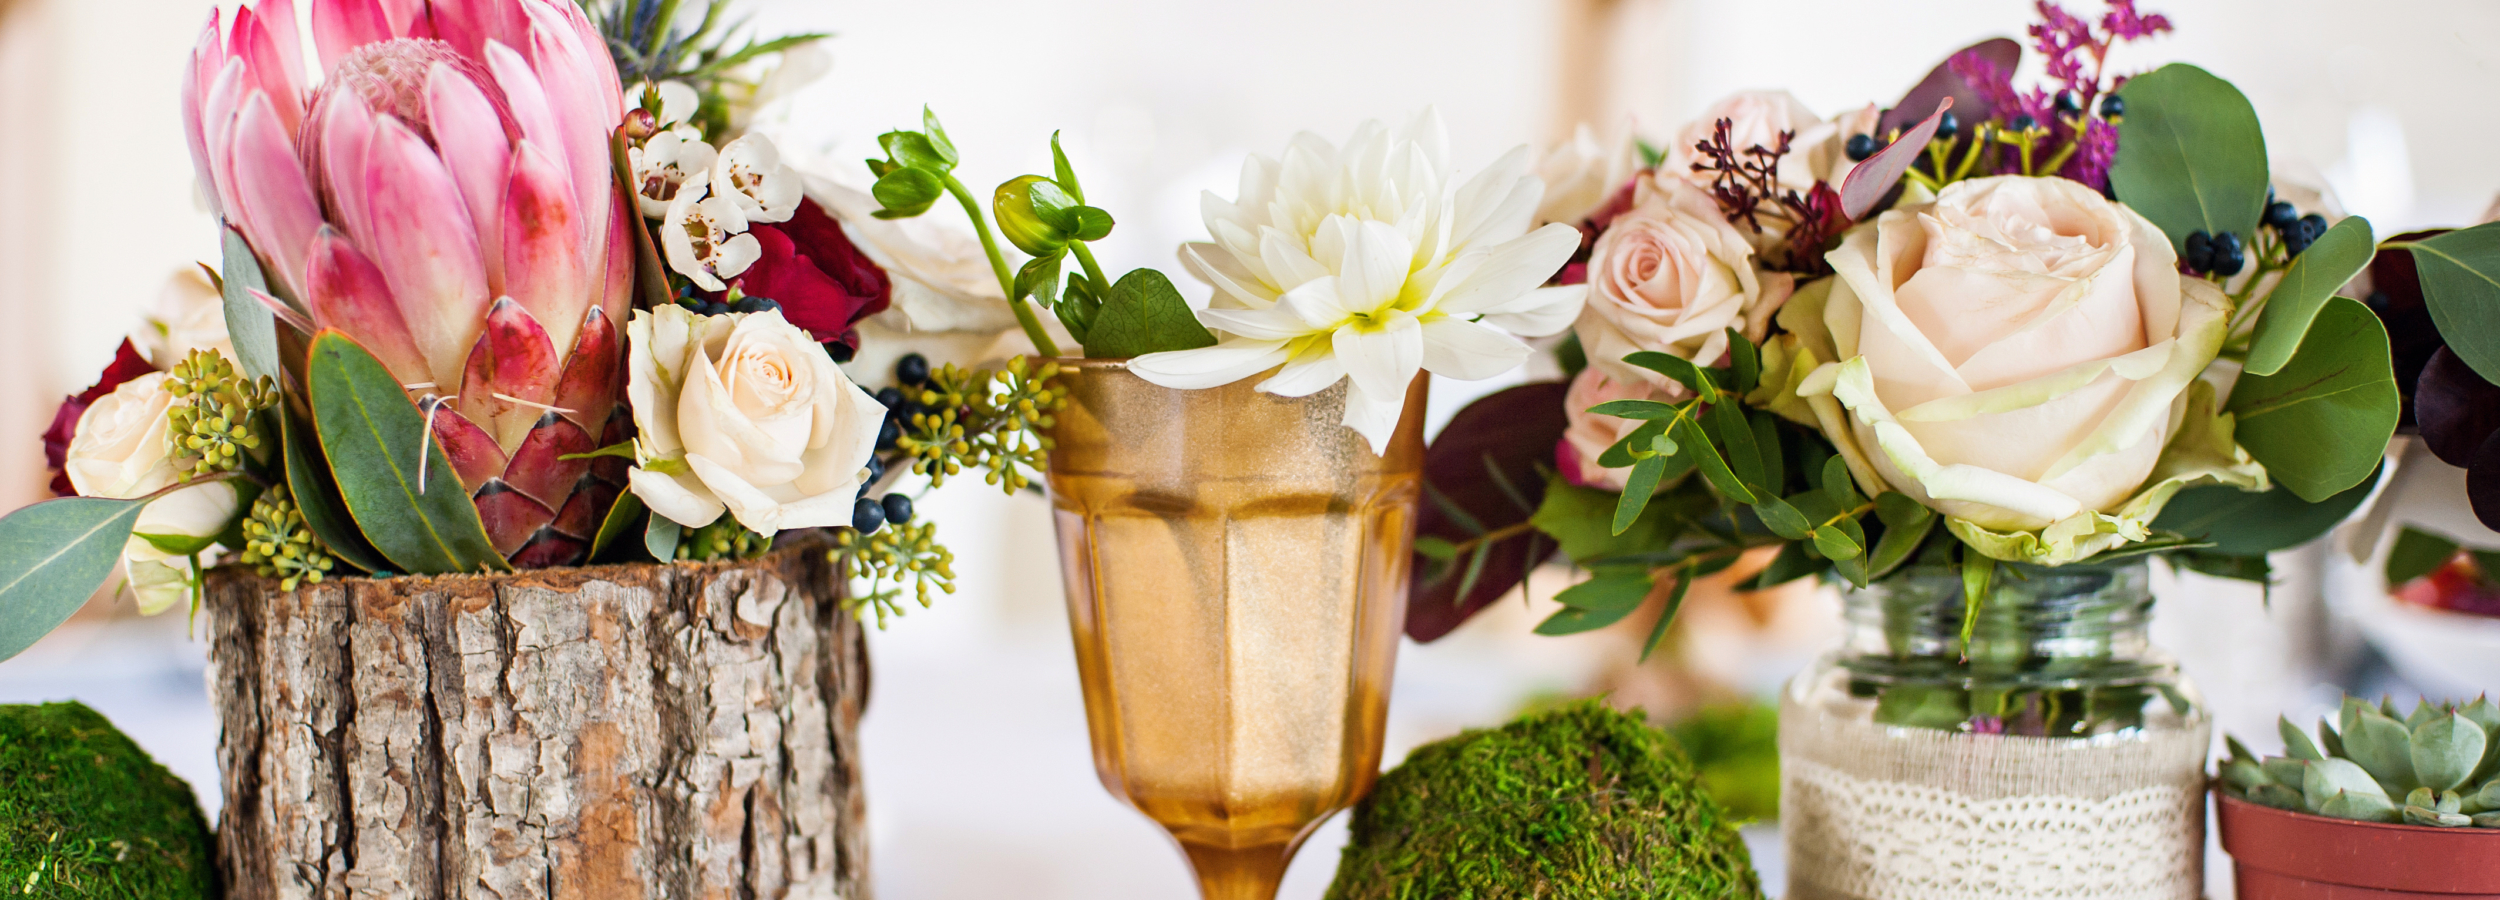 Beautiful elegant table for wedding party